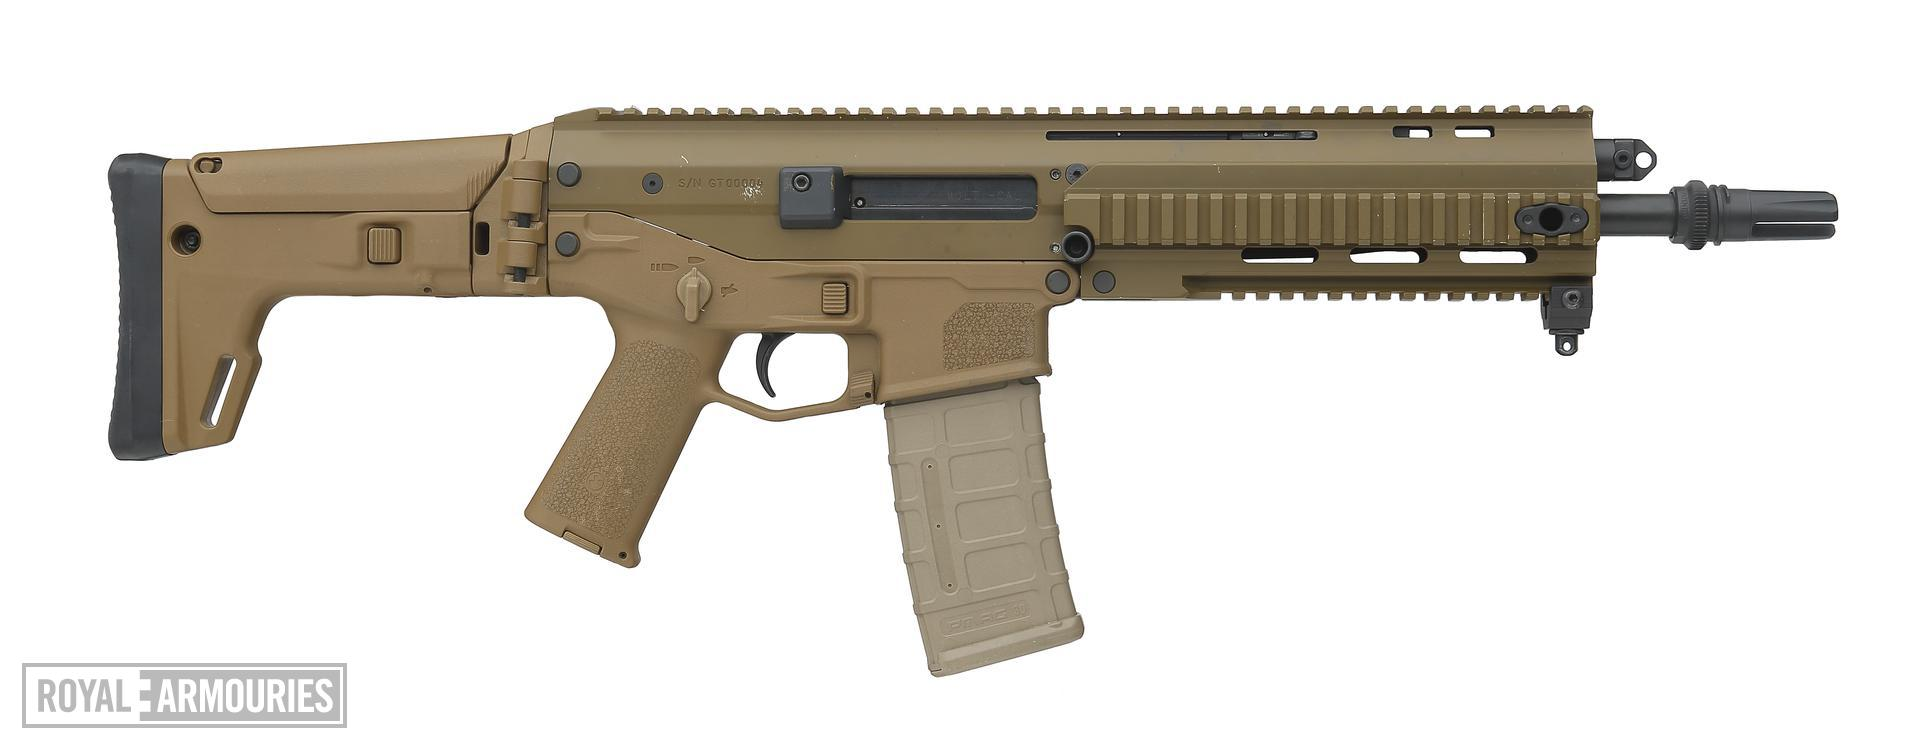 Centrefire automatic rifle - Remington Bushmaster ACR